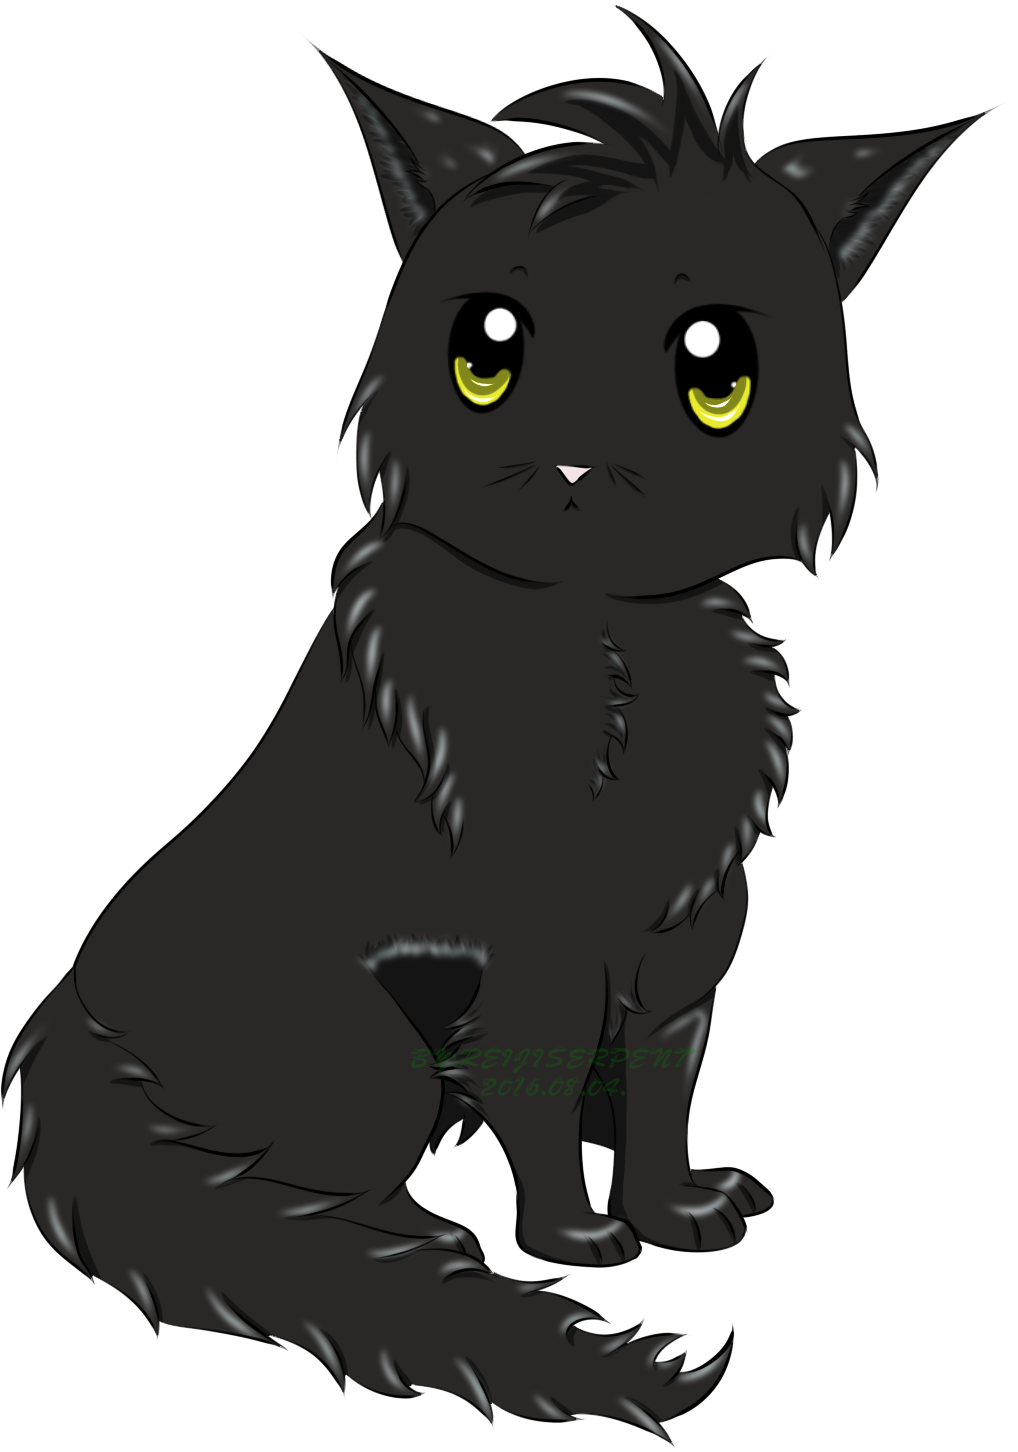 anime cat png 4 png image